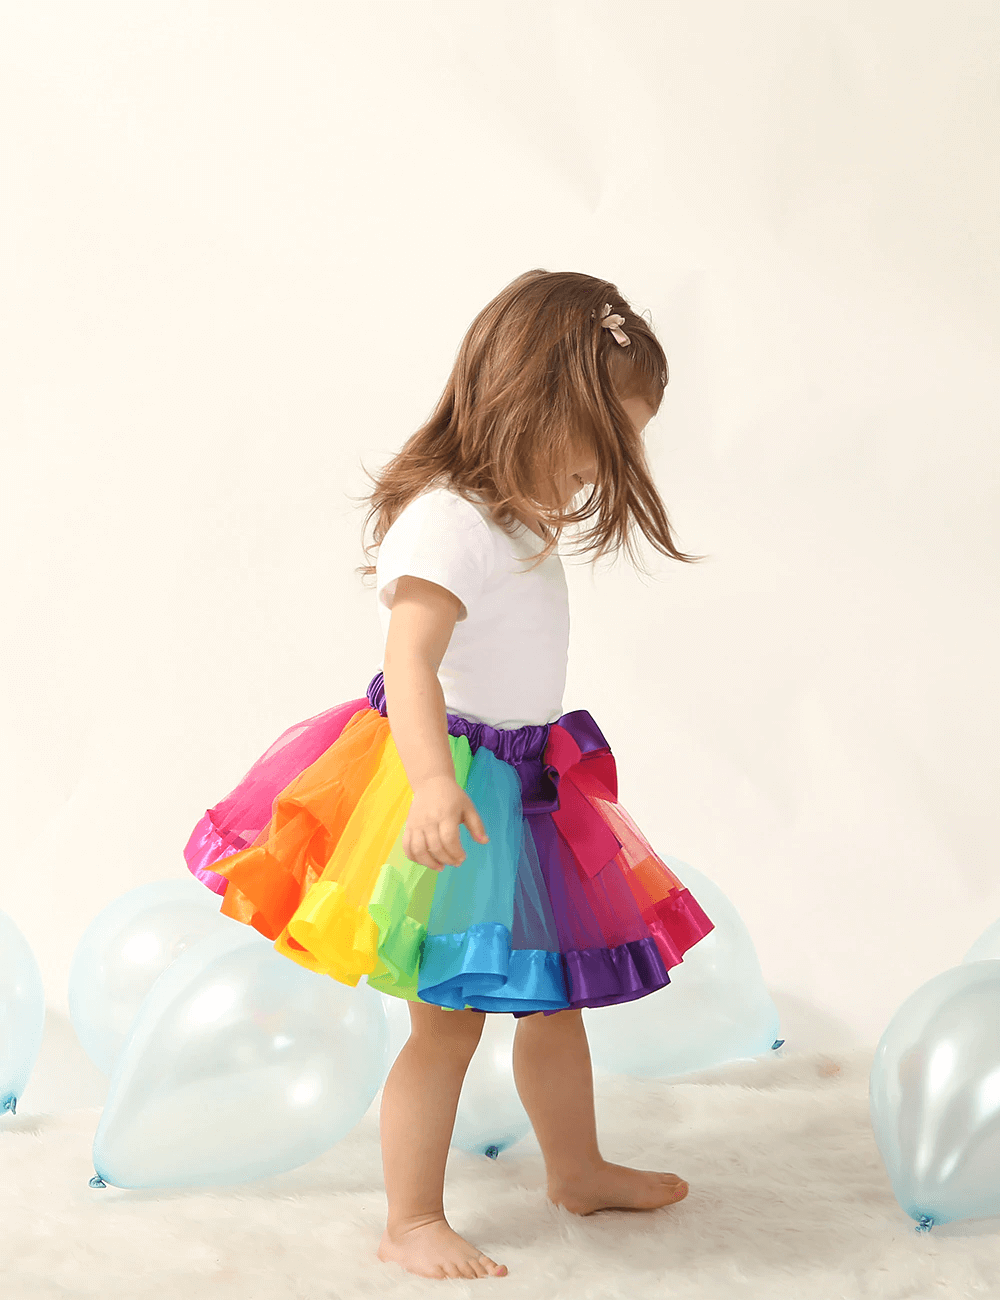 GIRLS RAINBOW TUTU SKIRT MULTICOLOURED PETTICOAT KID/'S COSTUME BALLET DANCE